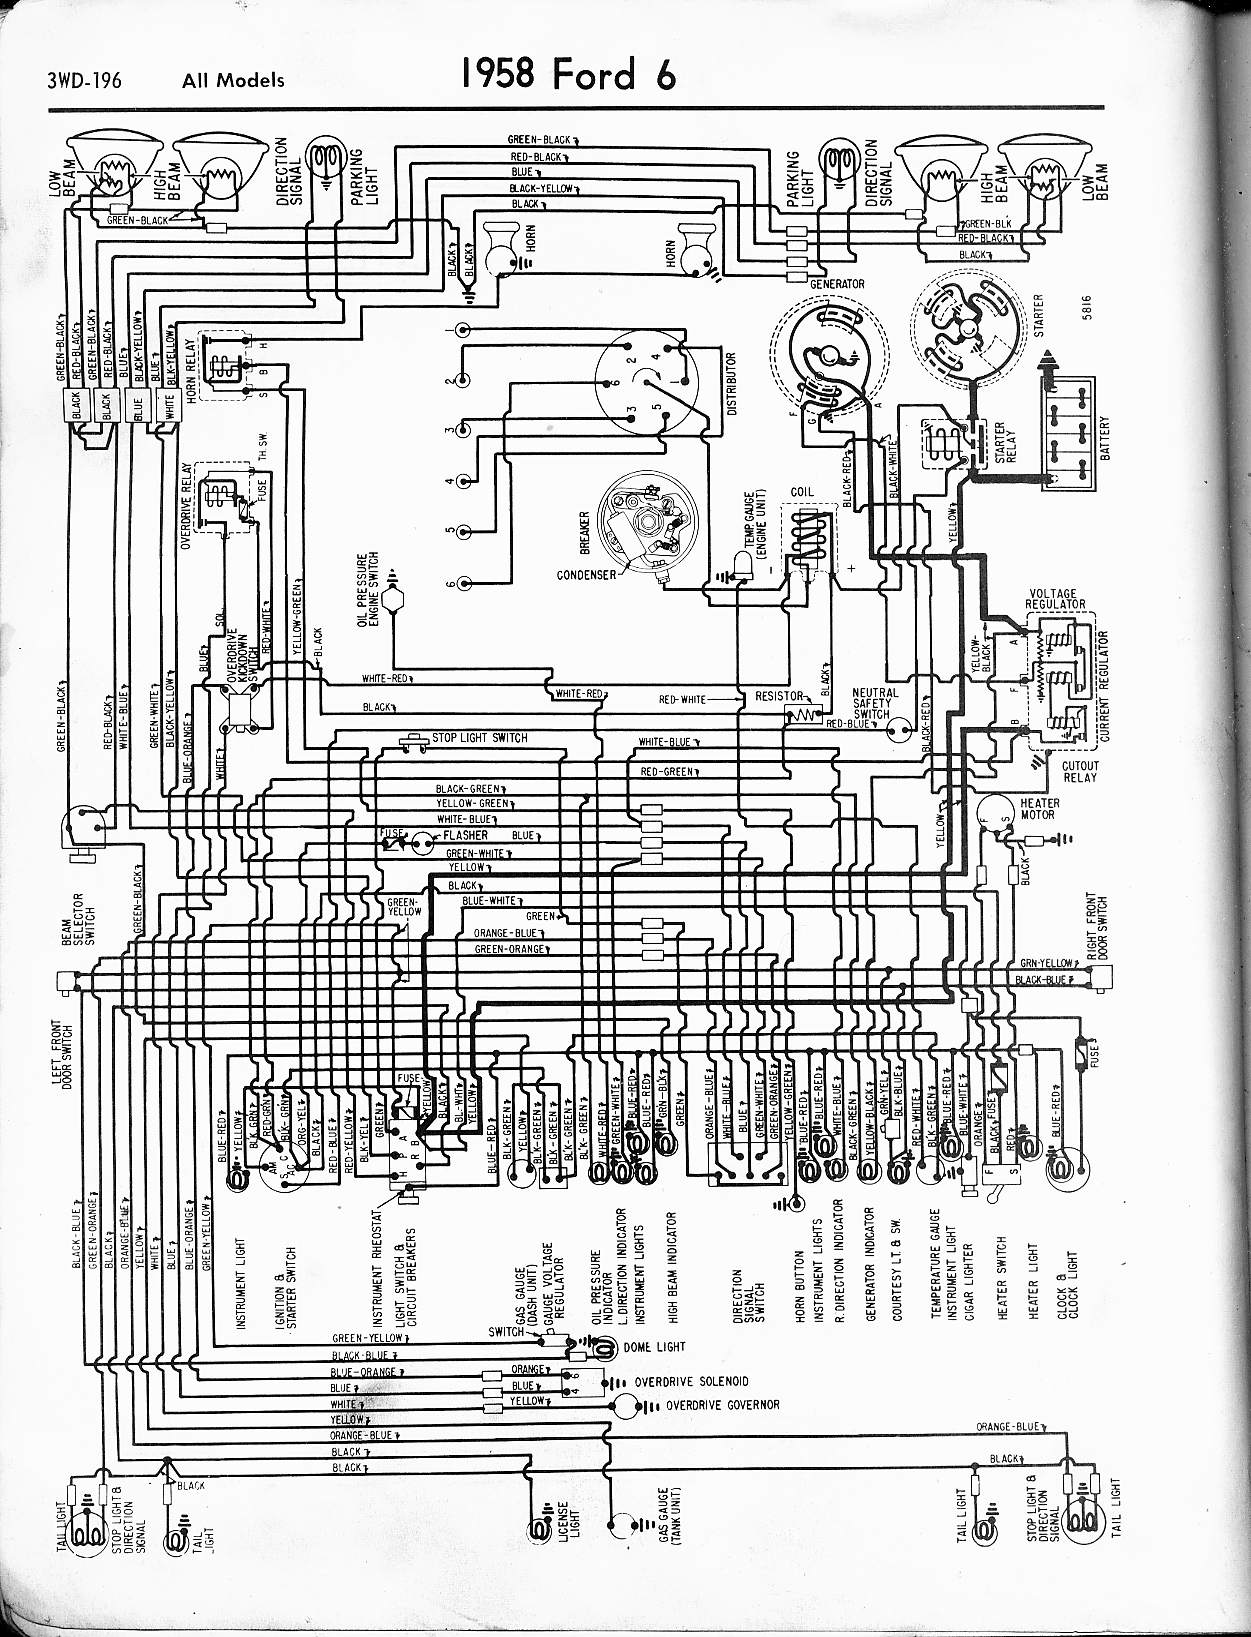 1961 1963 Ford F 100 Wiring Diagram - Info Wiring •